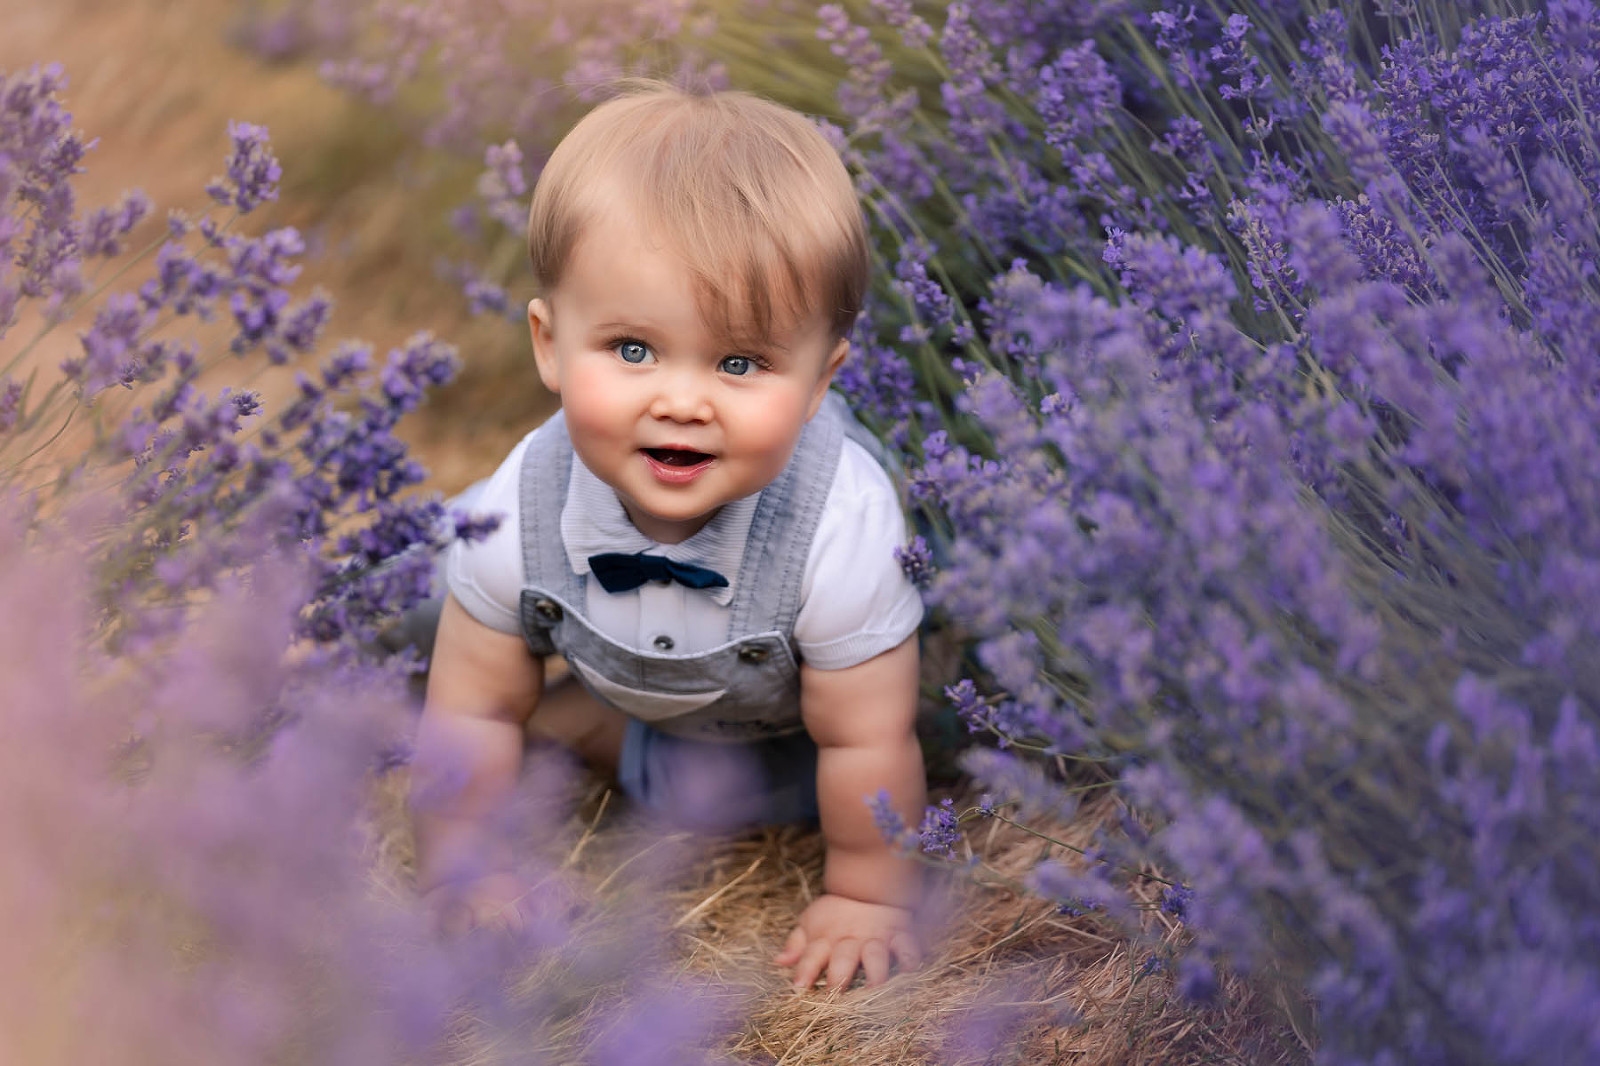 Childs portrait in lavender field